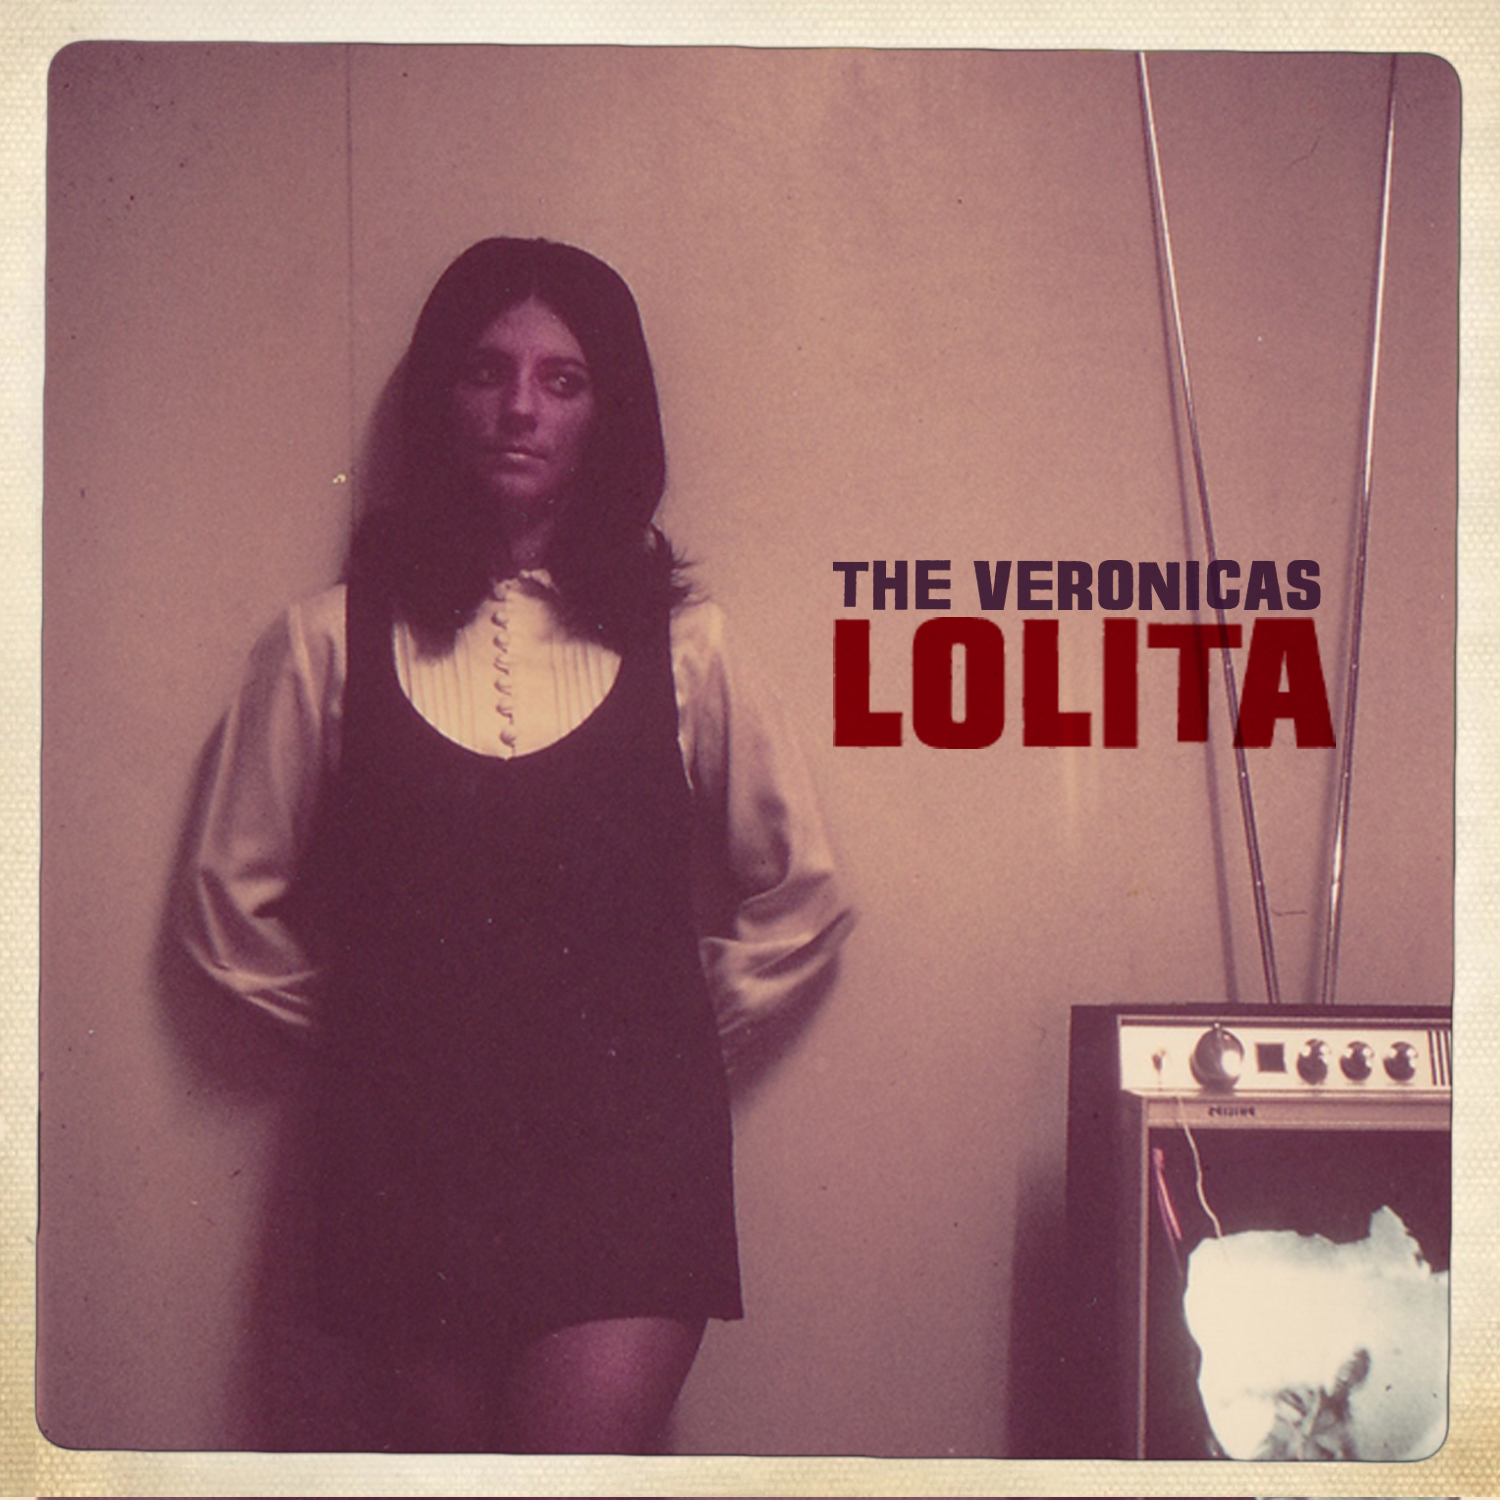 THE VERONICAS LOLITA